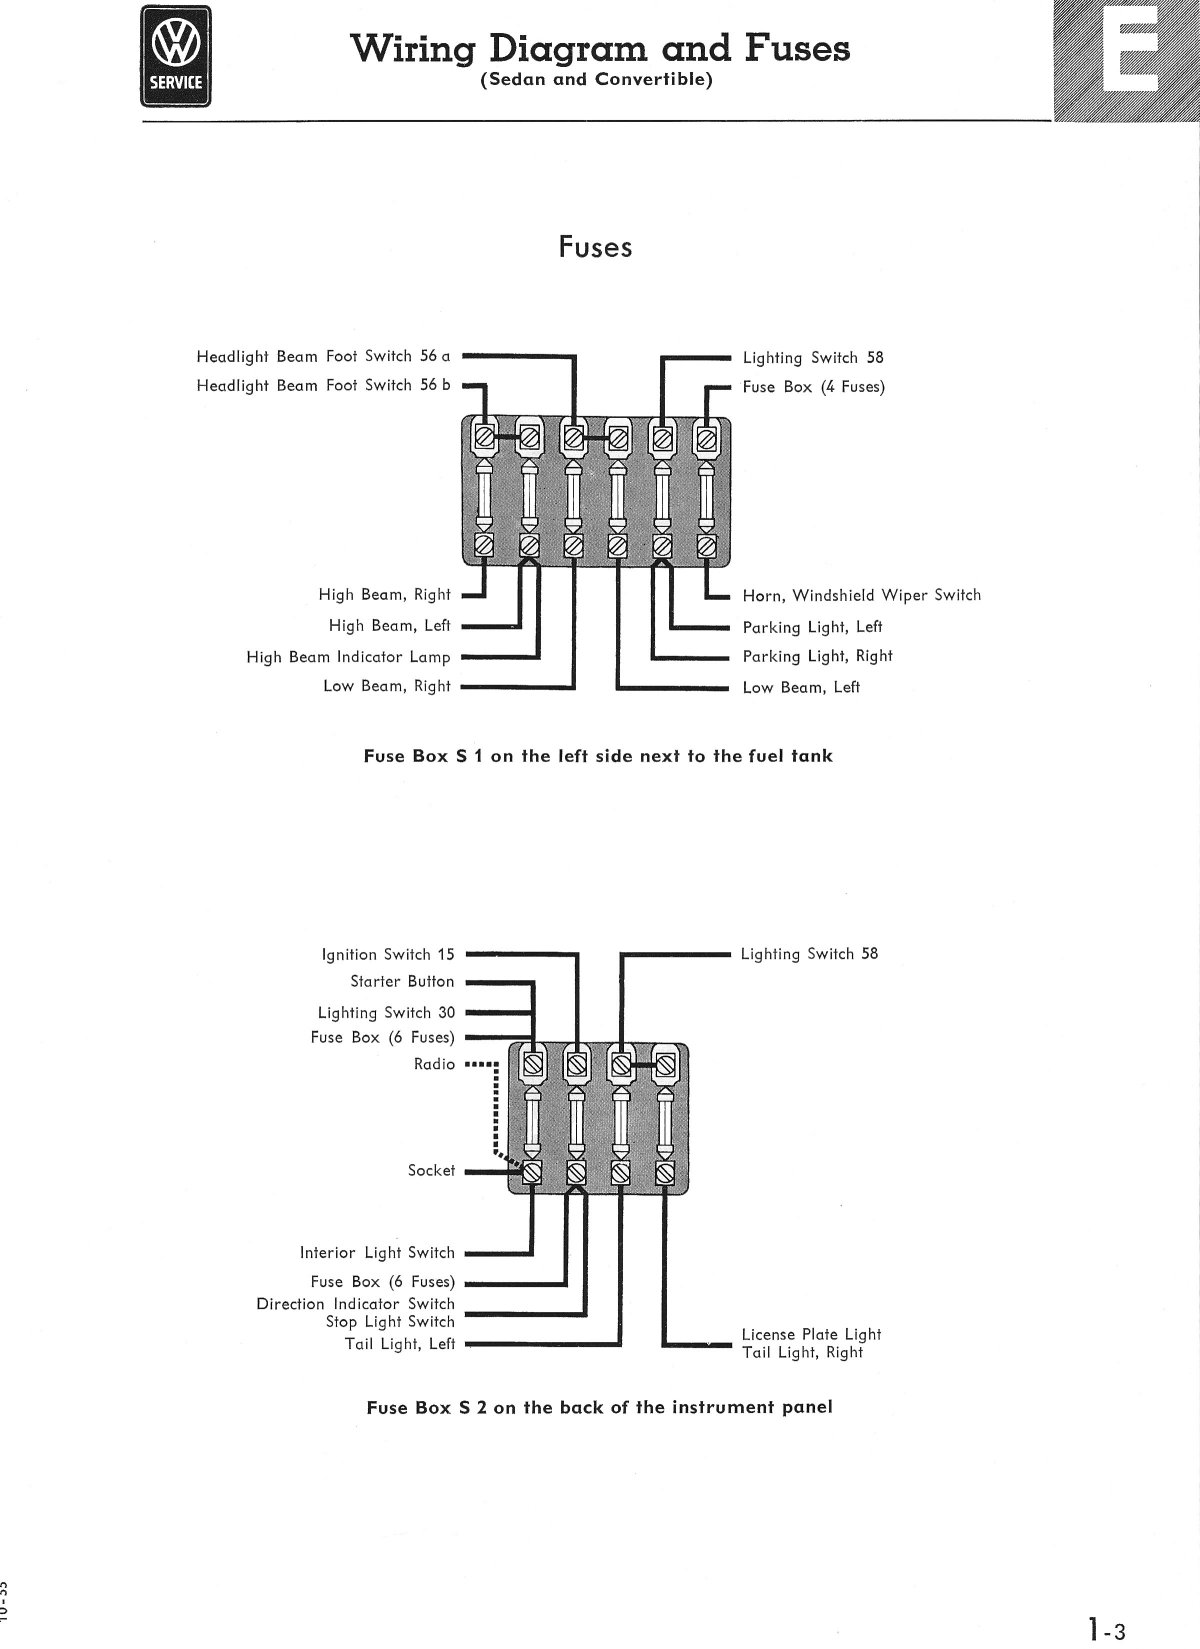 old fuse box wiring diagram 27 wiring diagram images 2002 VW Passat Fuse  Box Diagram 1999